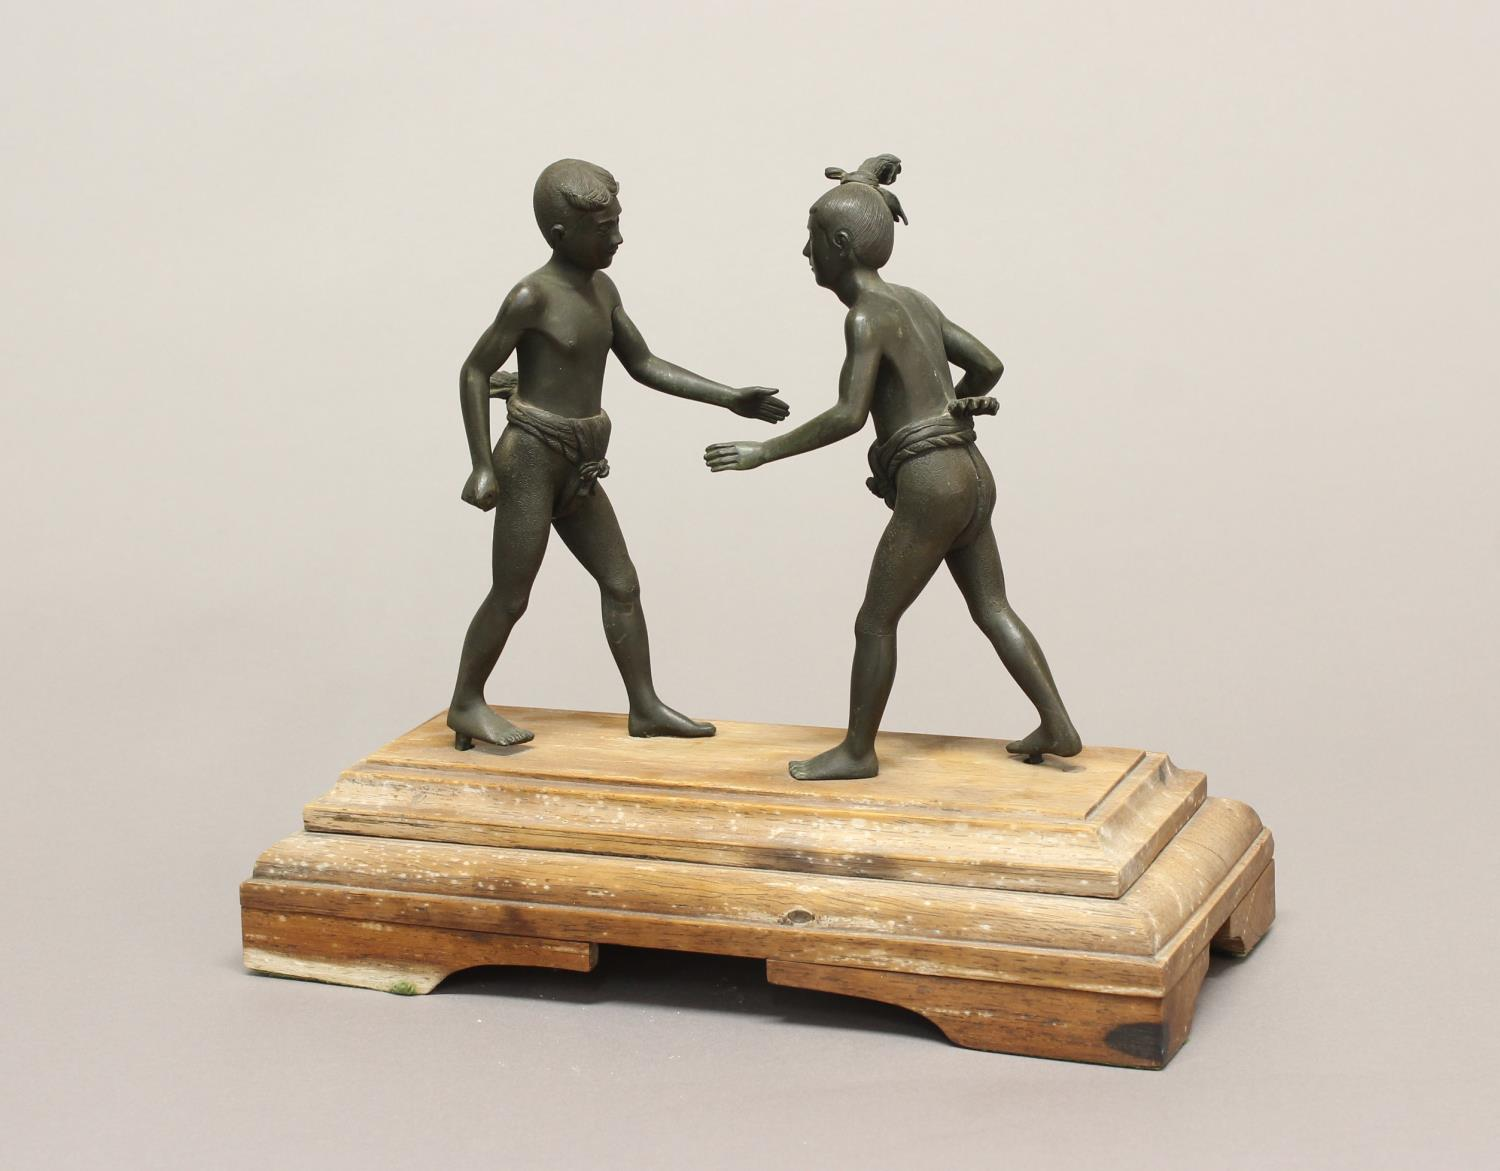 A LATE 19TH EARLY 20TH CENTURY BRONZE STUDY OF TWO WRESTLERS. A cast and patinated bronze study of